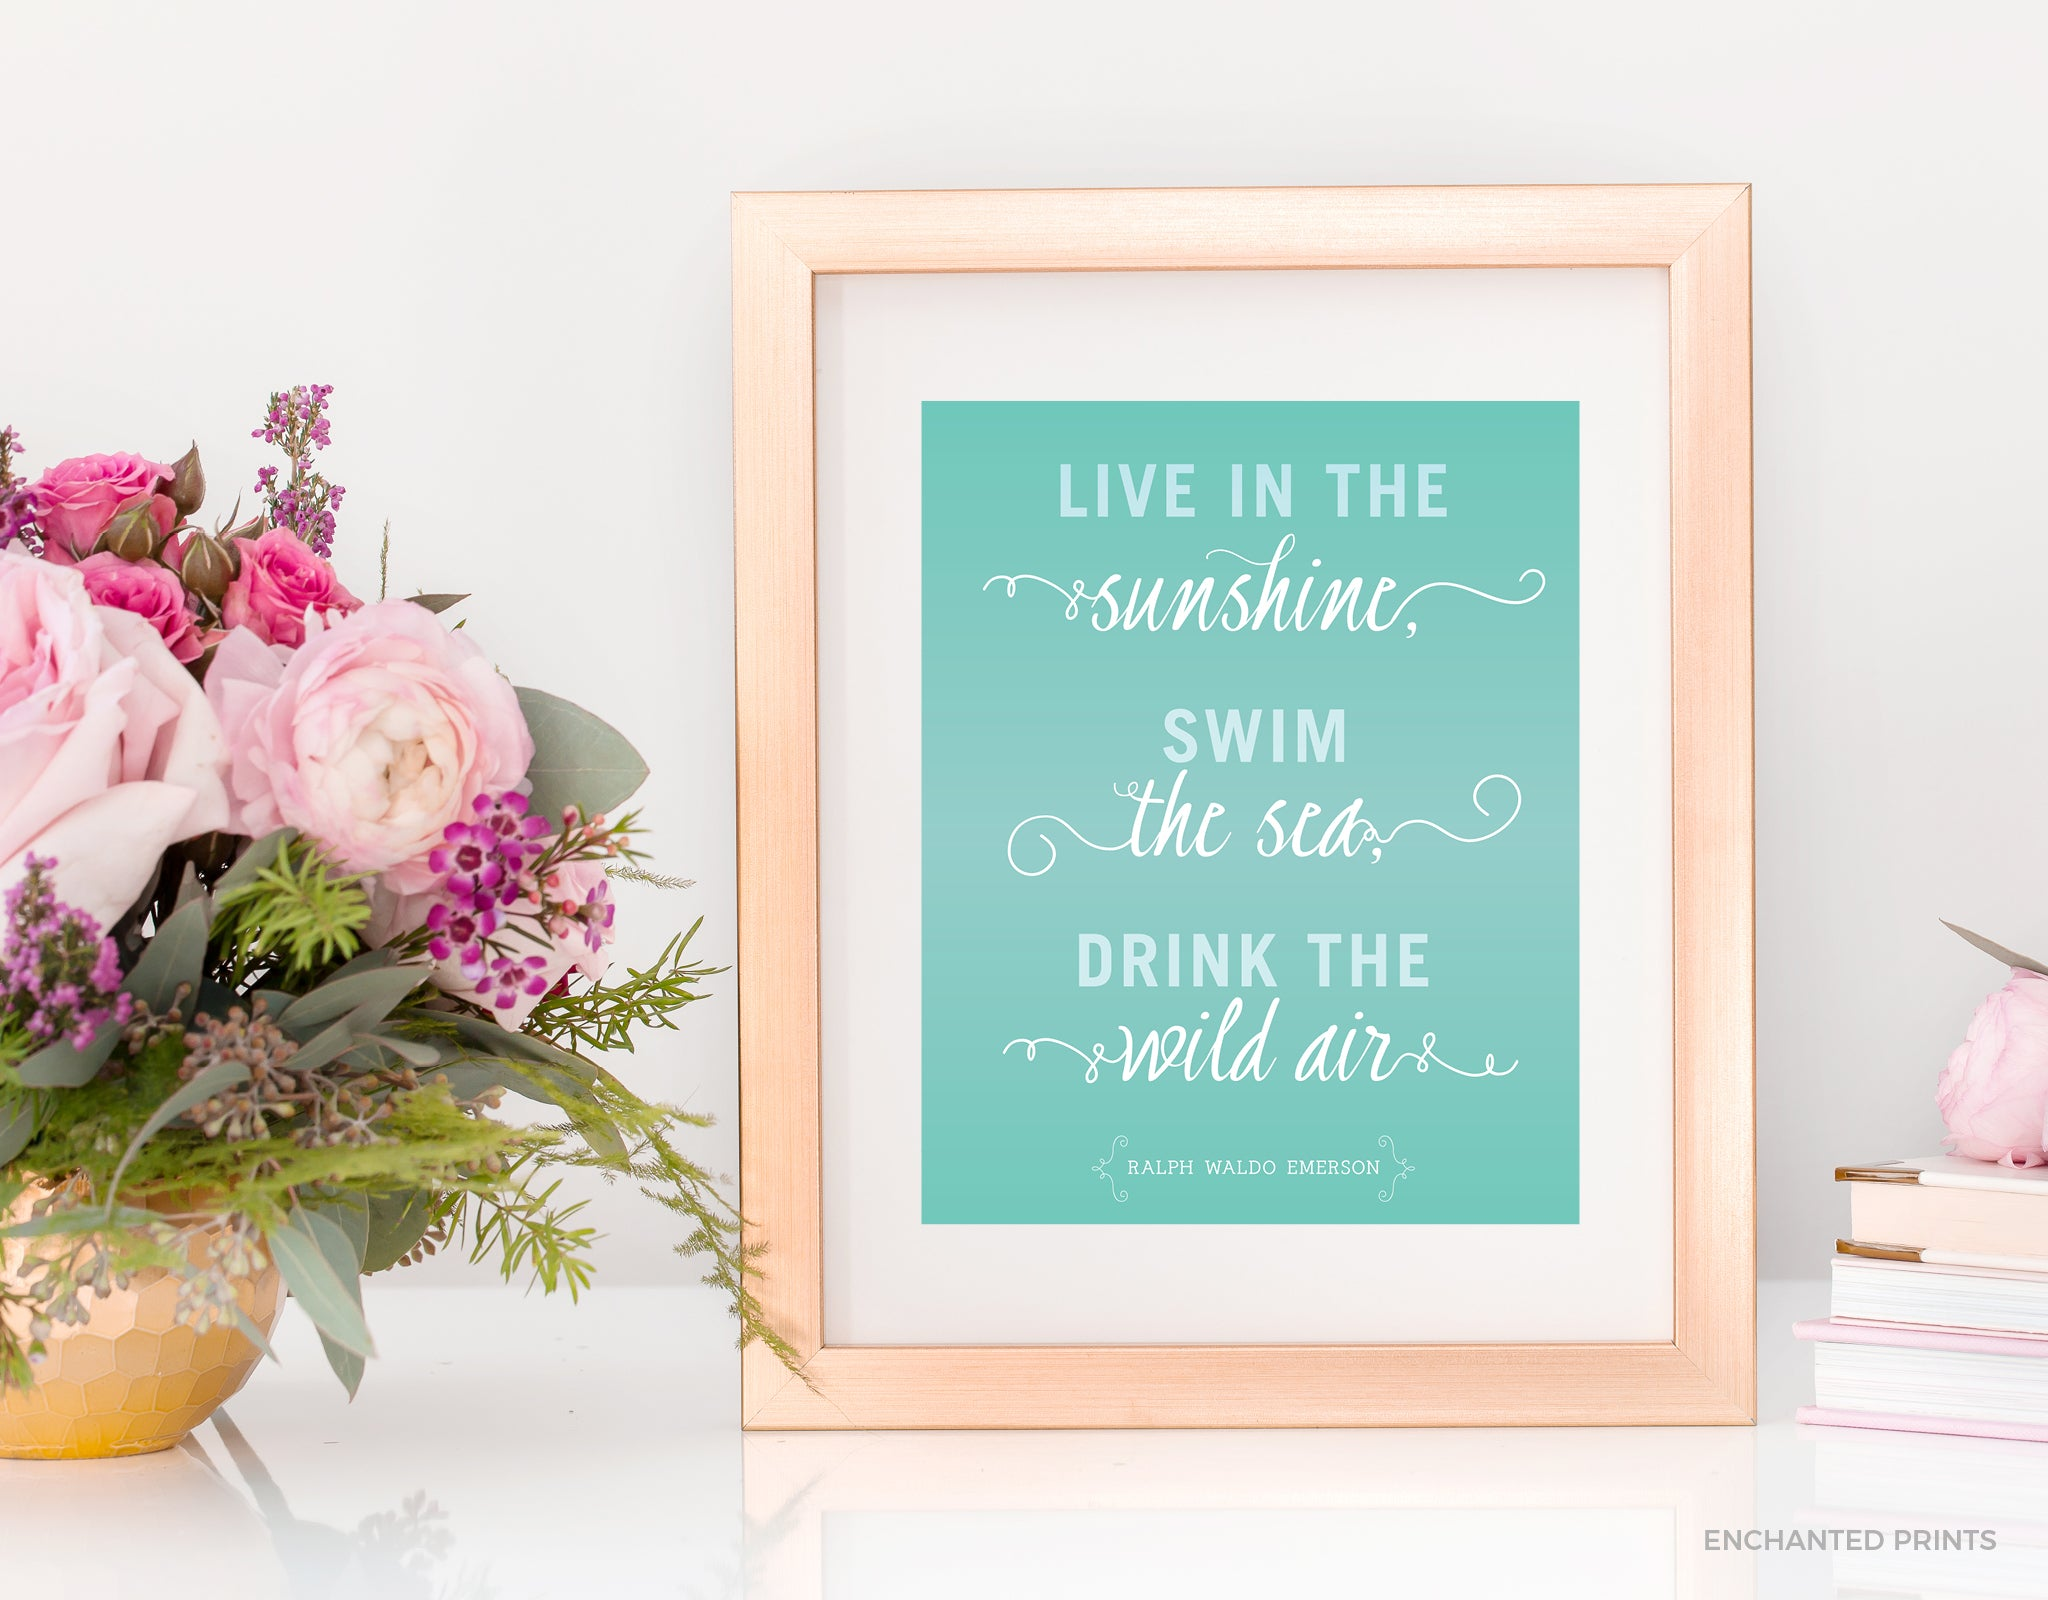 Live In The Sunshine From Ralph Waldo Emerson Enchanted Prints